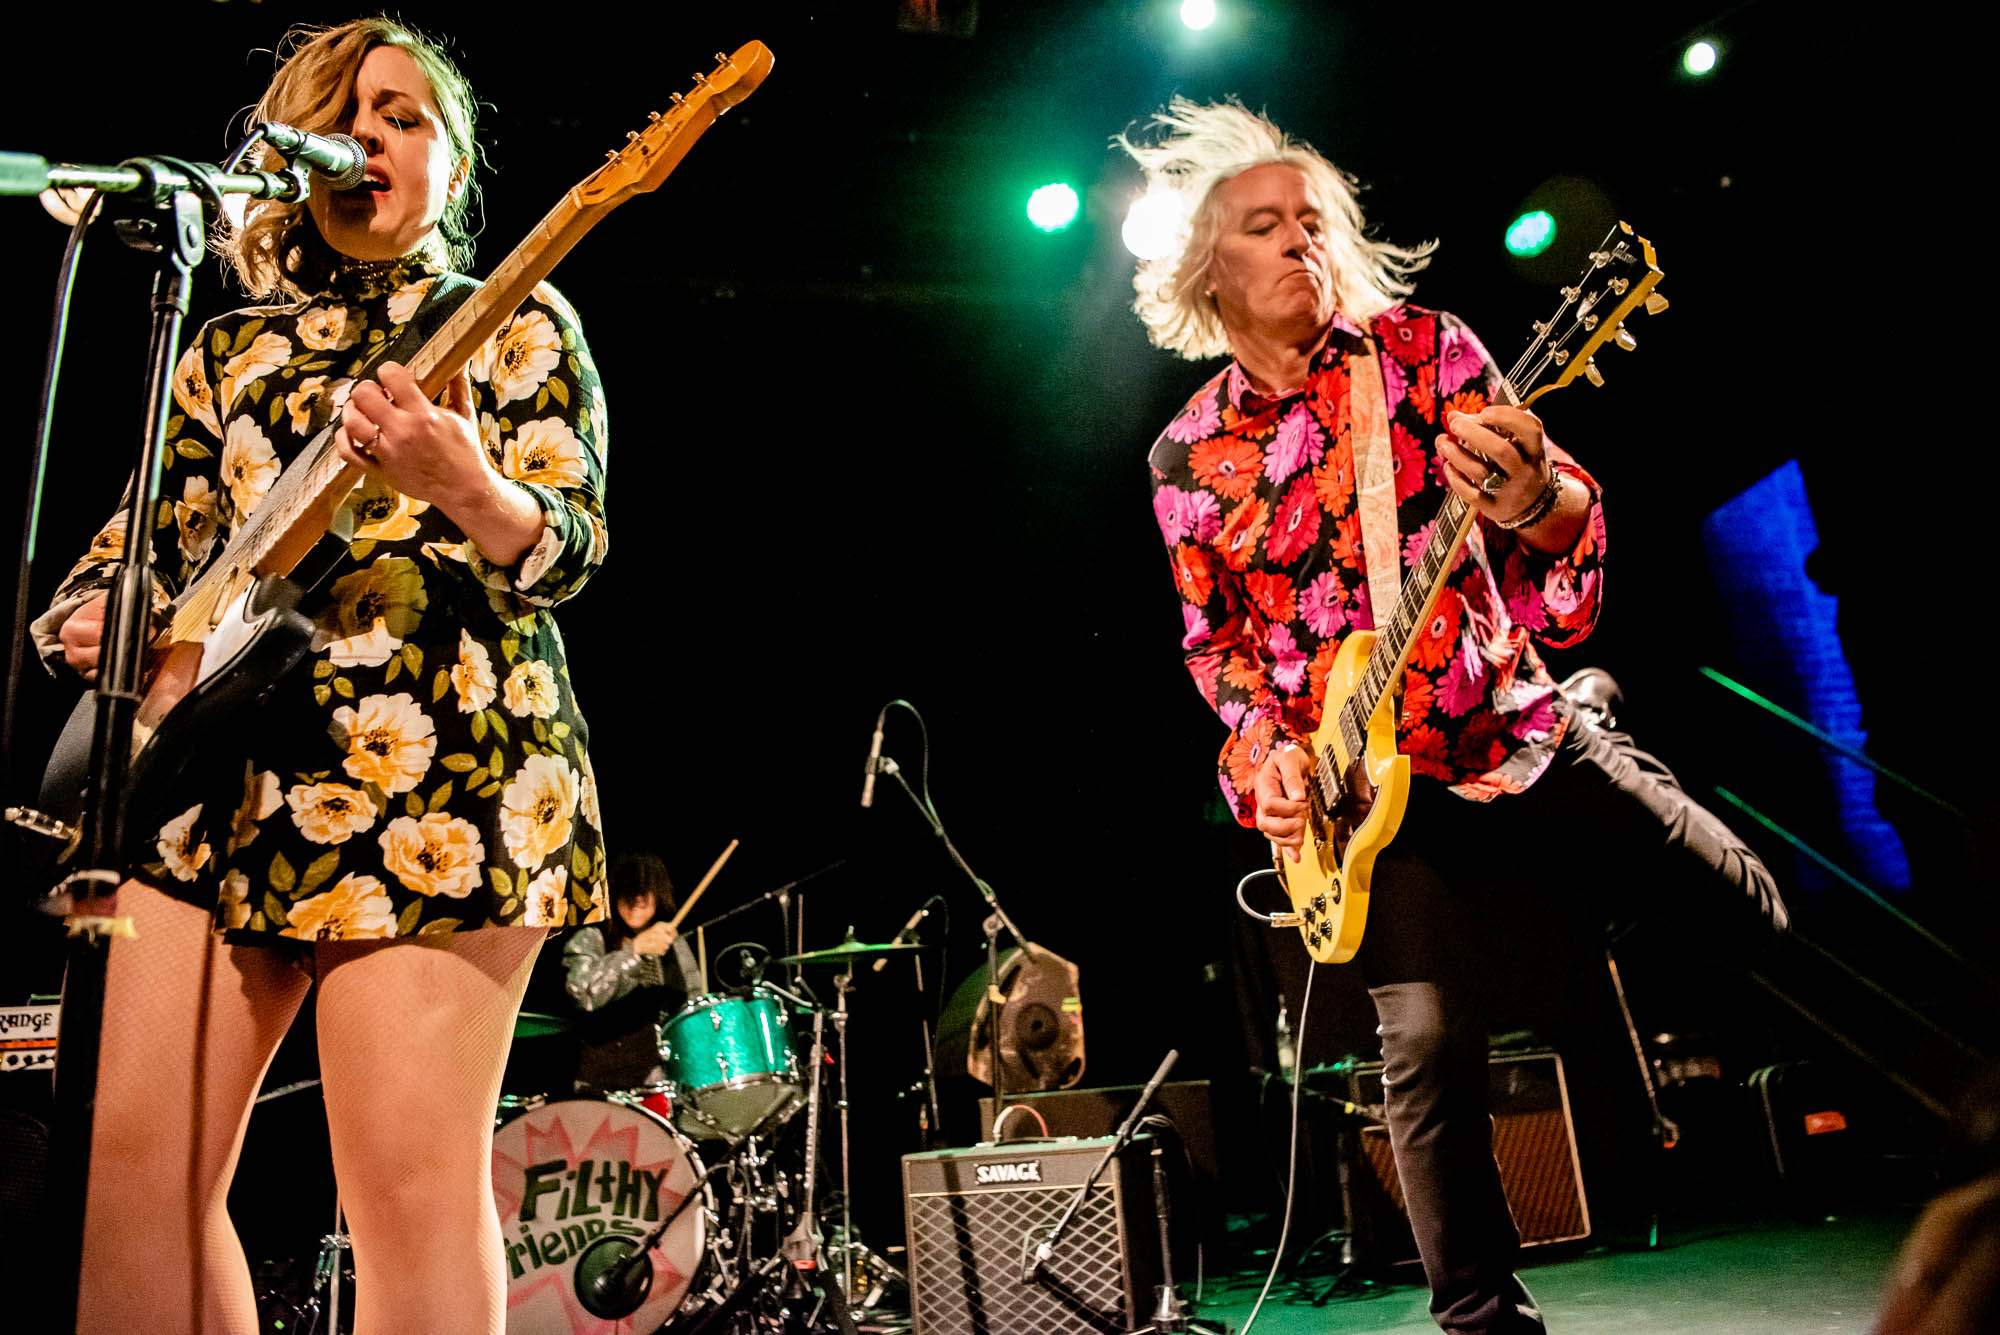 Corin Tucker and Peter Buck of Filthy Friends on Friday, May 24, 2019 at Music Hall of Williamsburg.